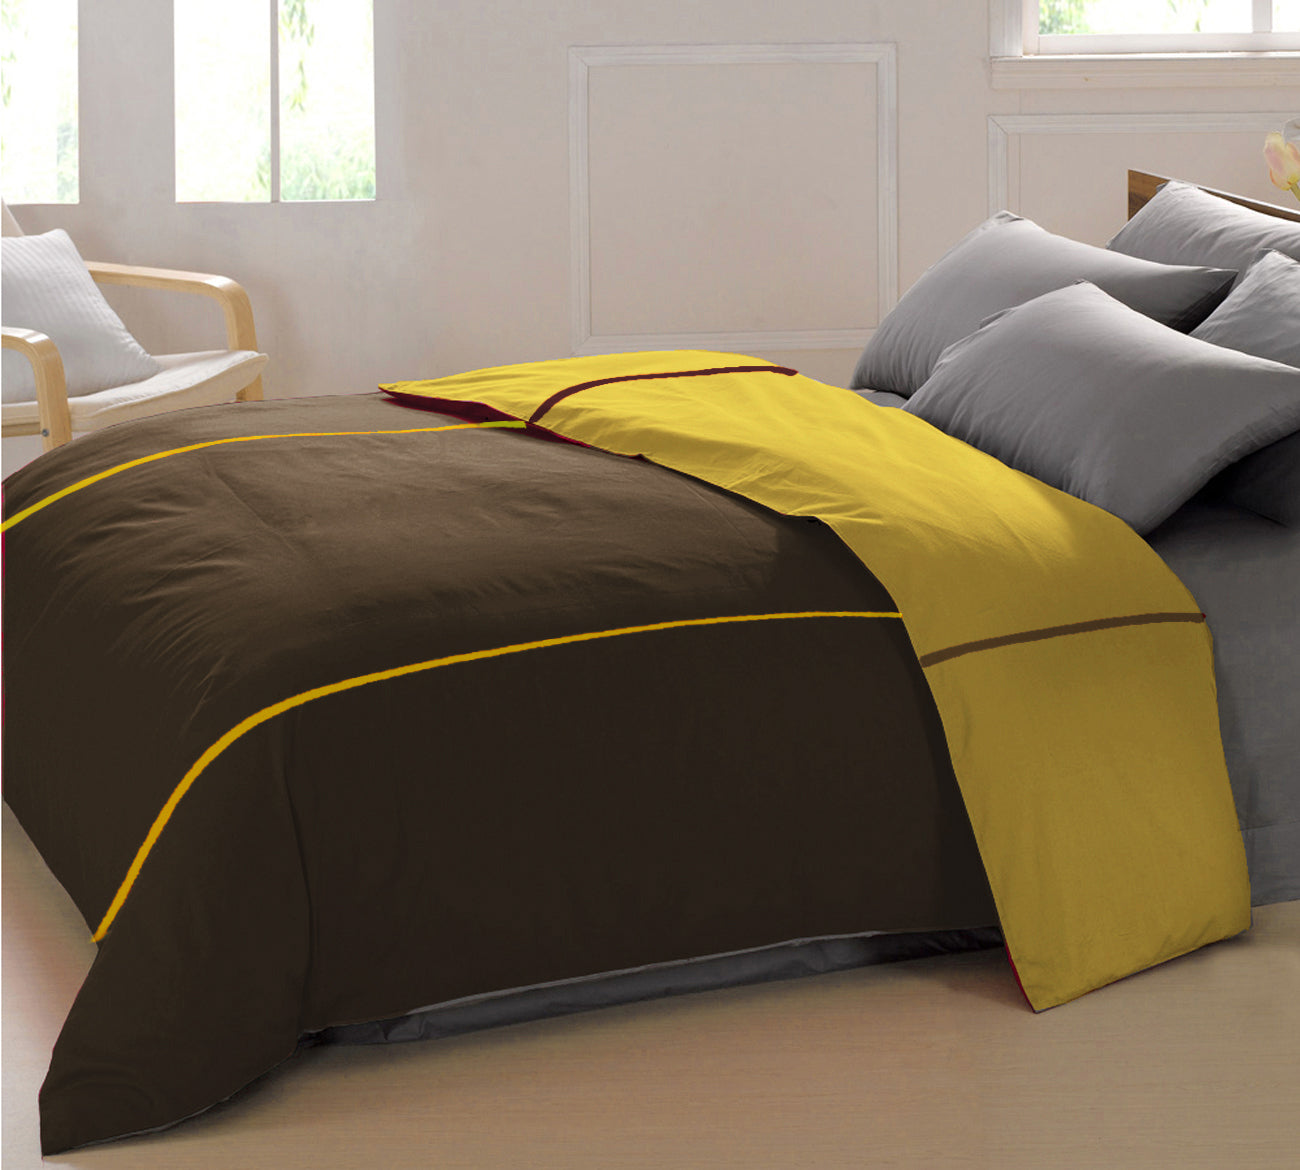 AURAVE Reversible Style Plain Coffee Brown & Mustard 210 TC Mercerised Cotton Duvet Cover/Quilt Cover